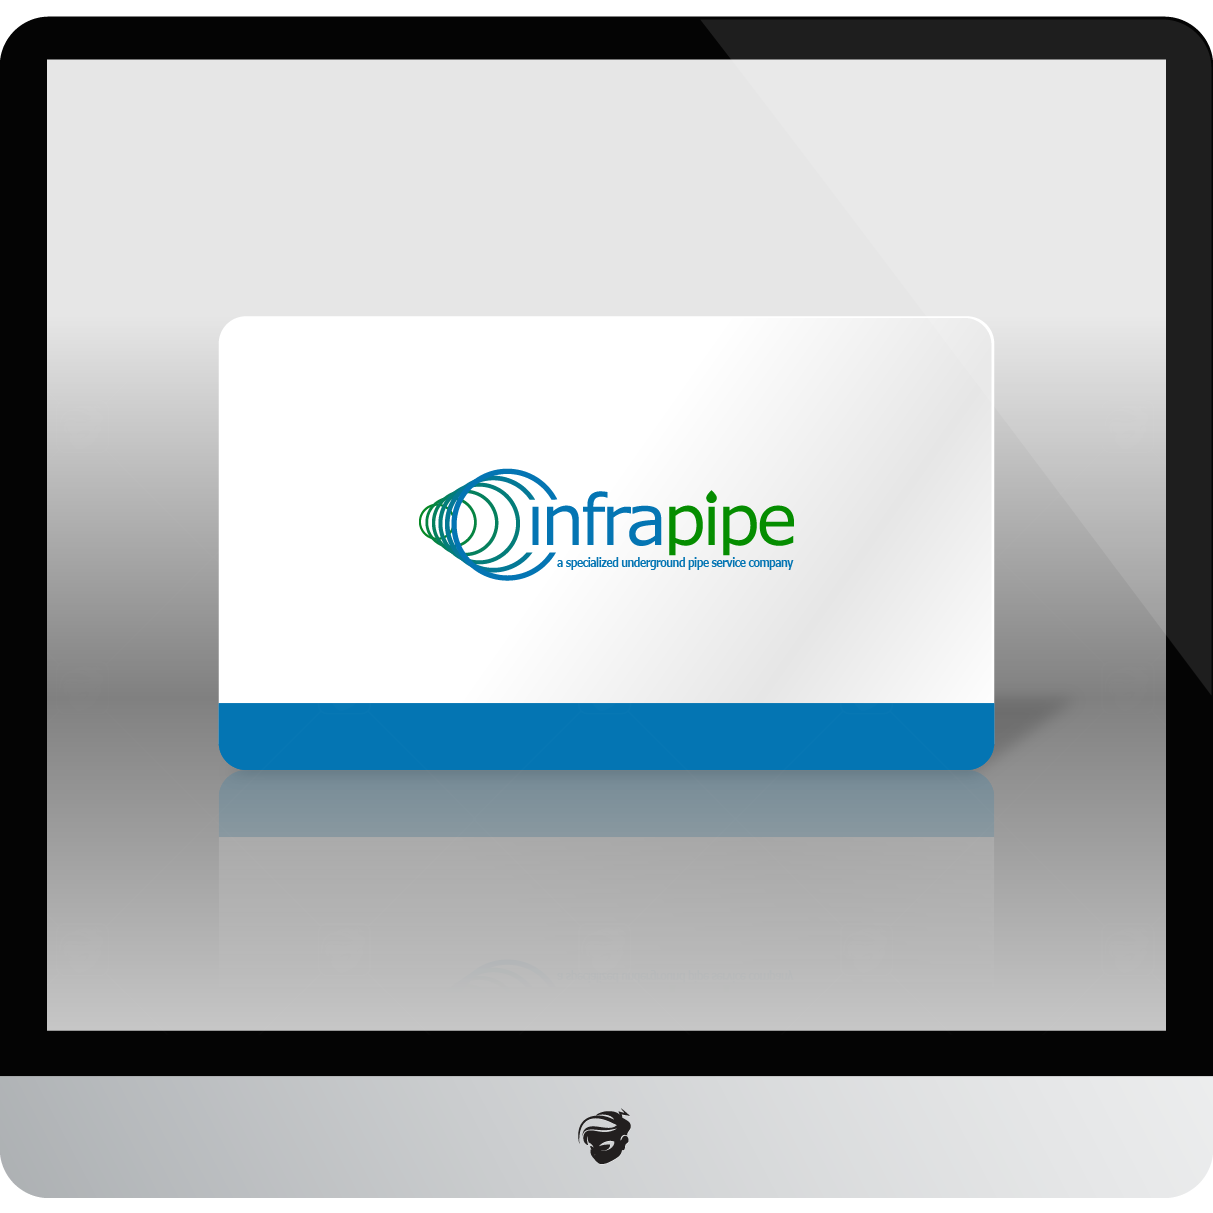 Logo Design by zesthar - Entry No. 173 in the Logo Design Contest Inspiring Logo Design for Infrapipe.